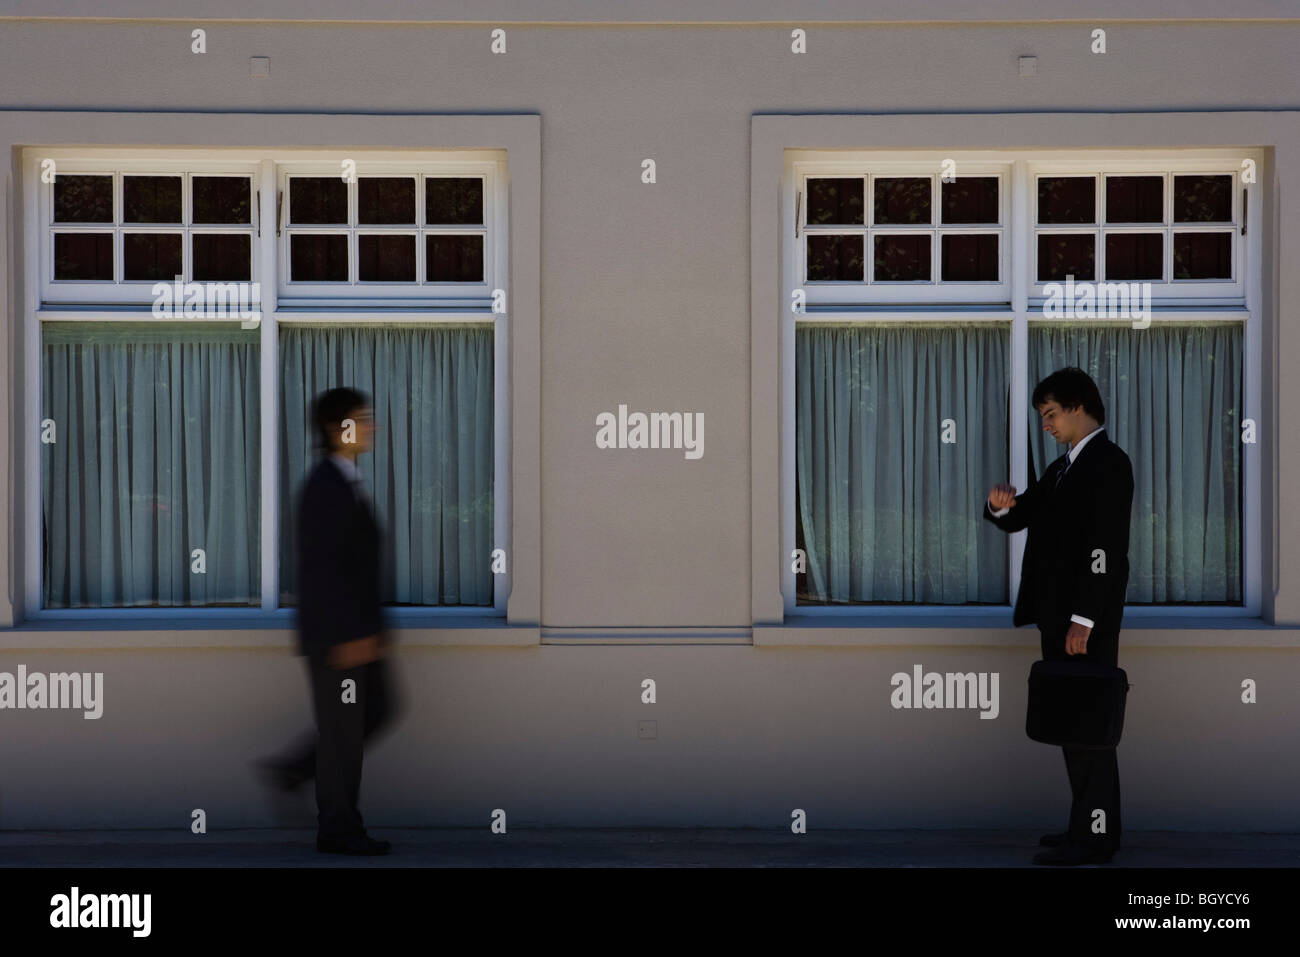 Young businessman standing on sidewalk, checking time as another man approaches - Stock Image